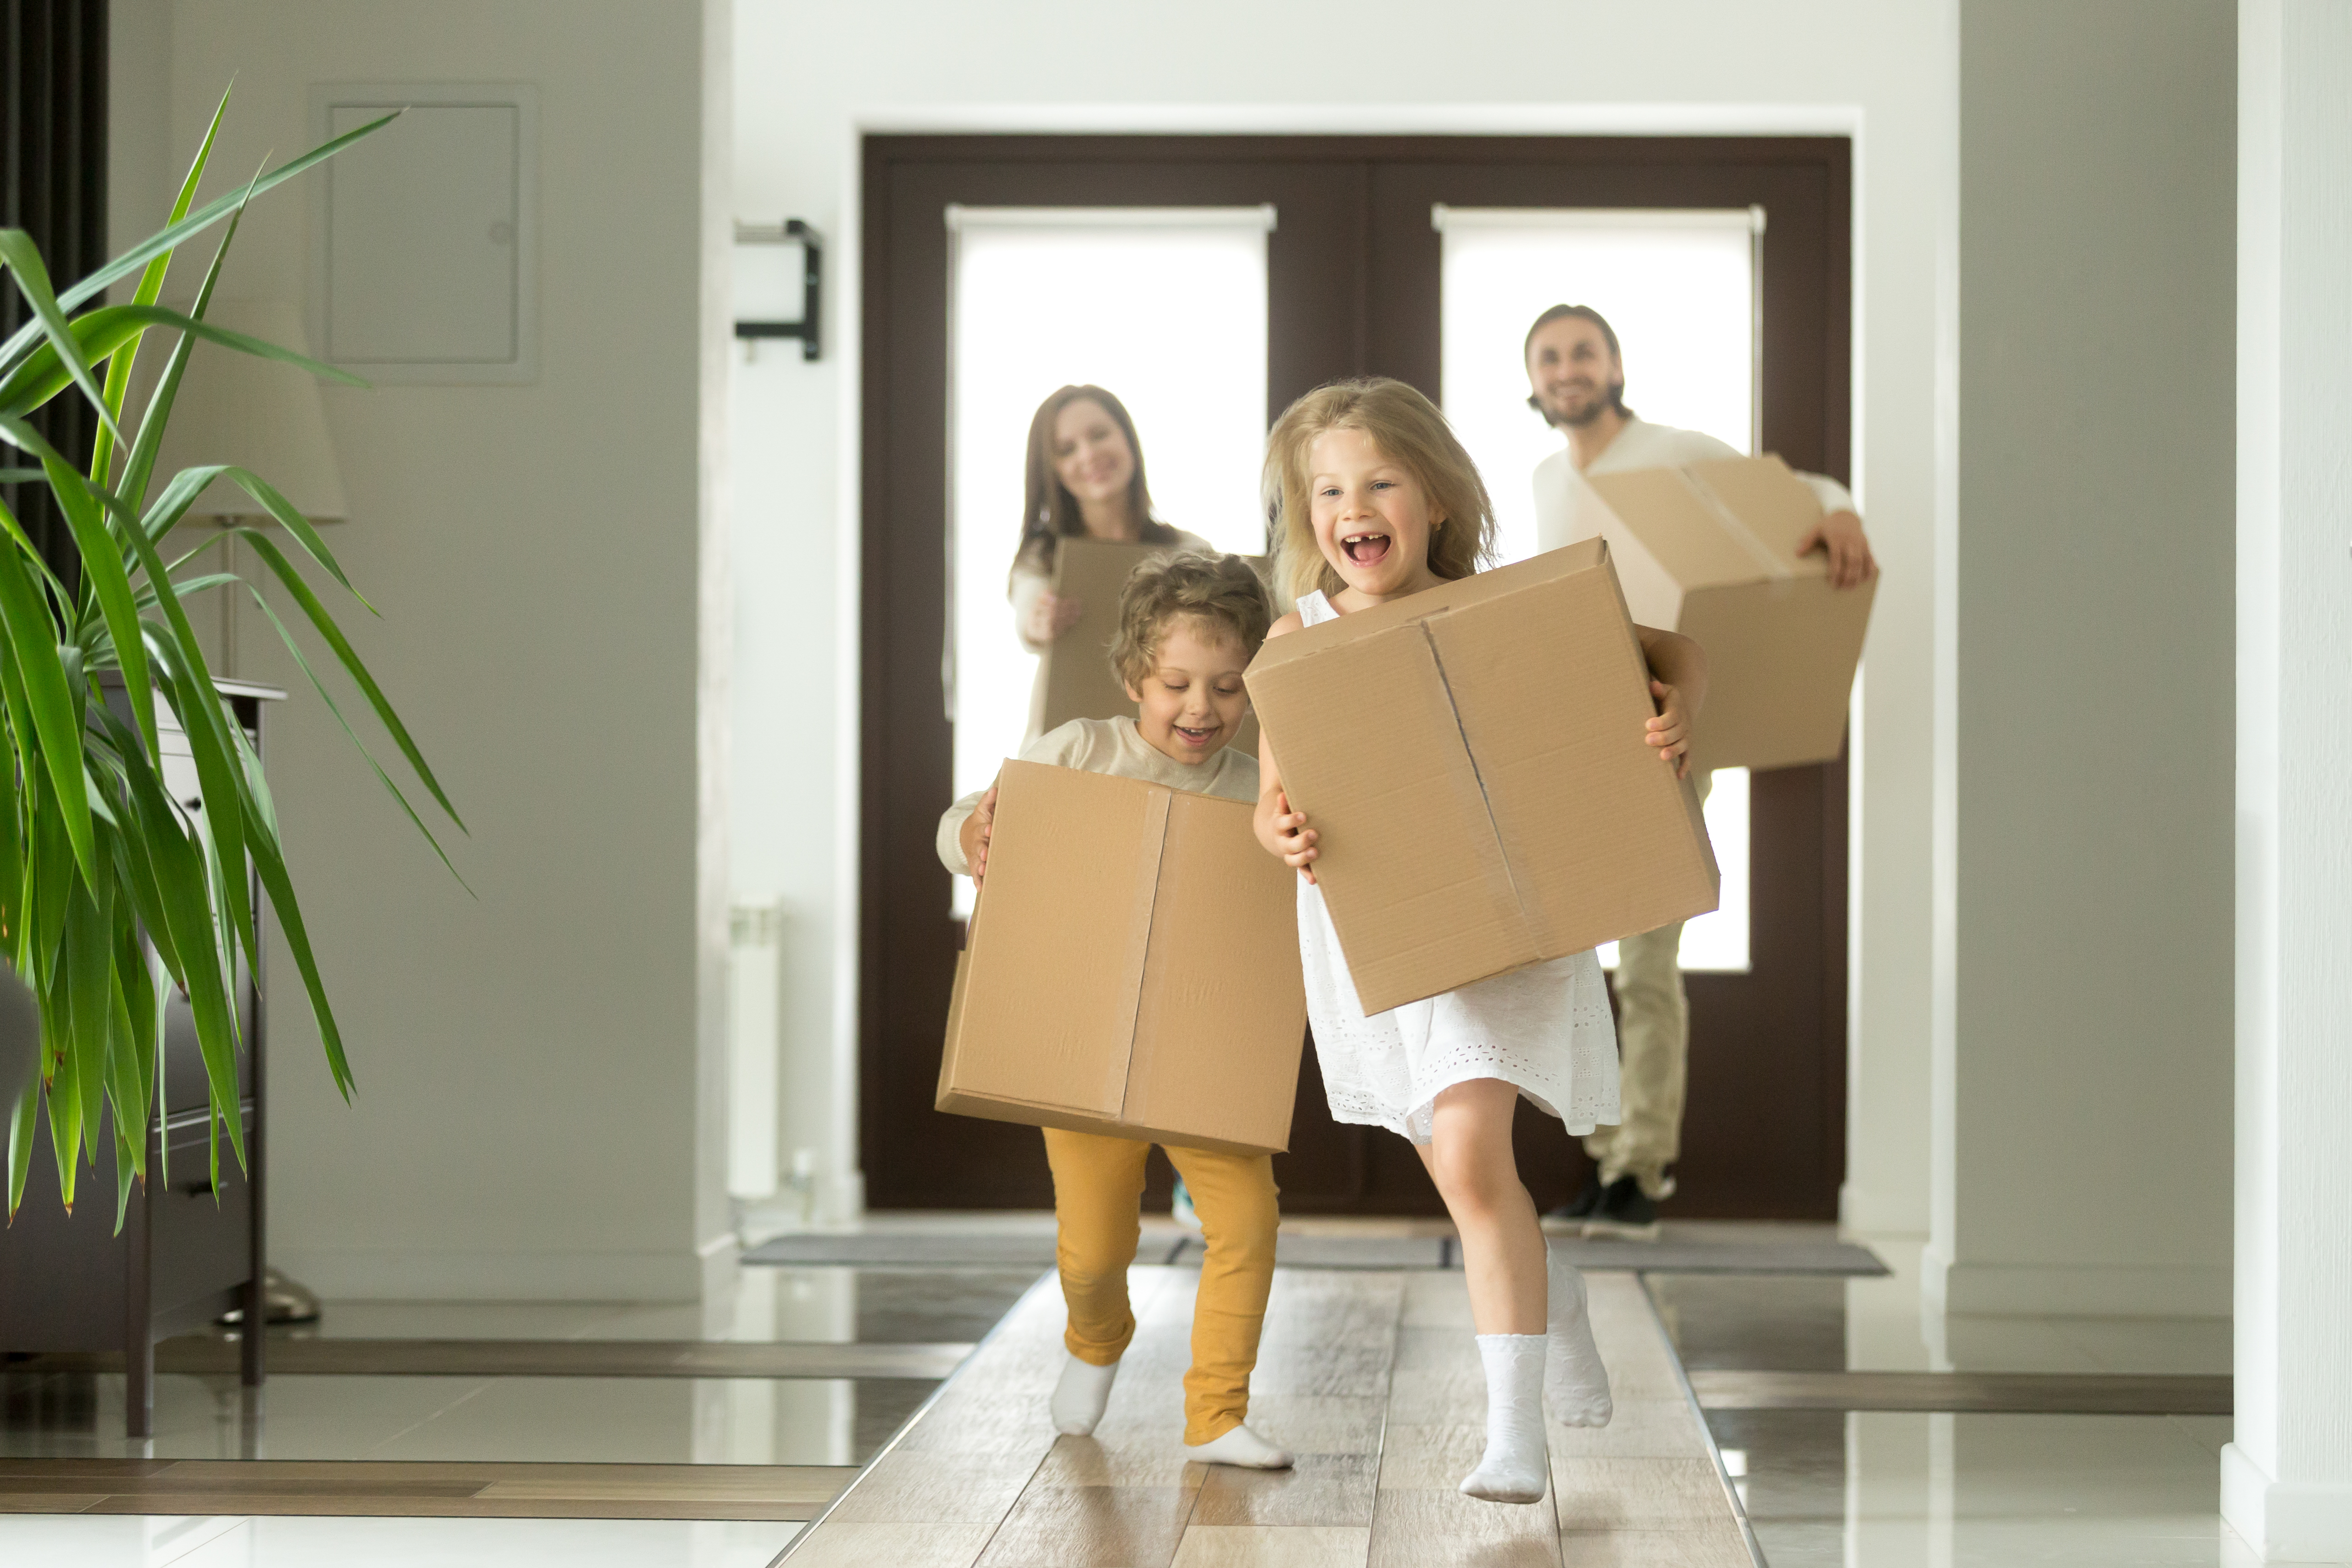 Buying or selling a home handshake